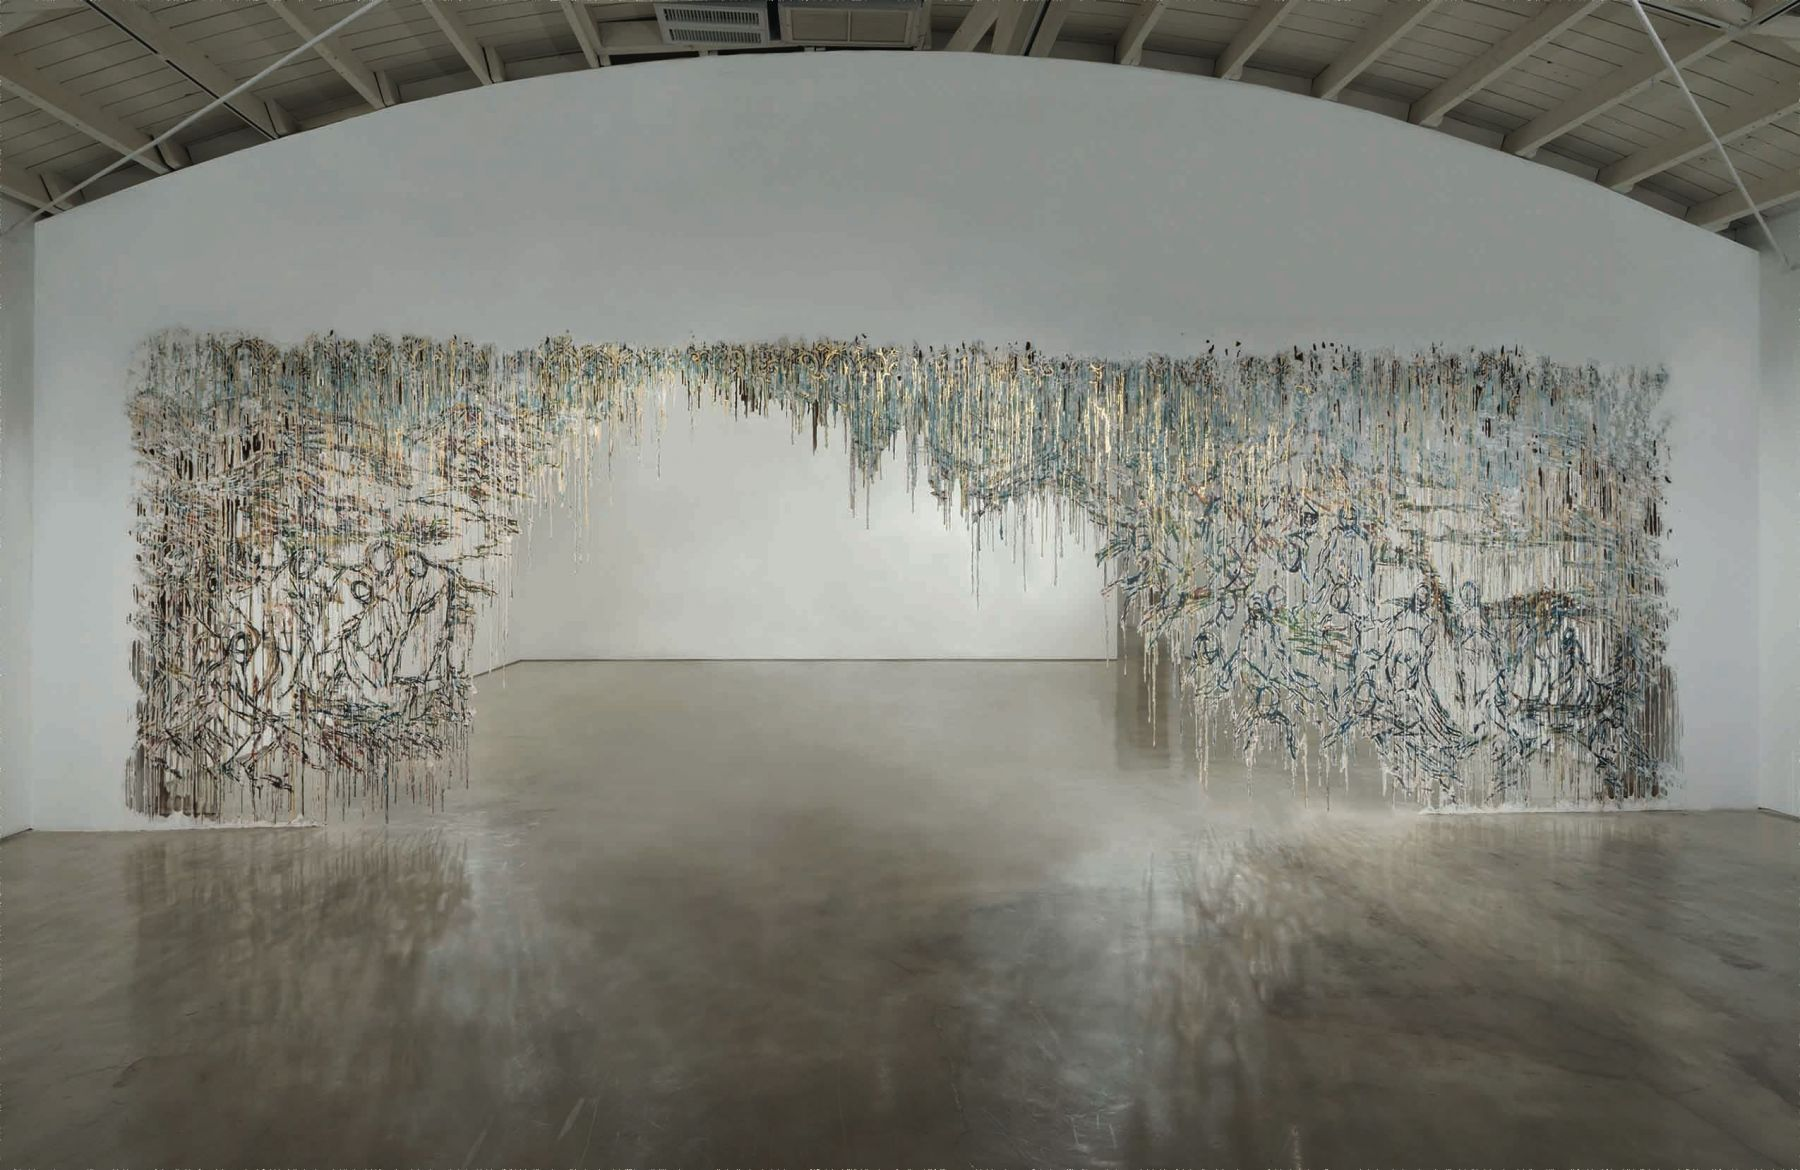 a work of art by Diana Al-Hadid on view in a museum exhibition